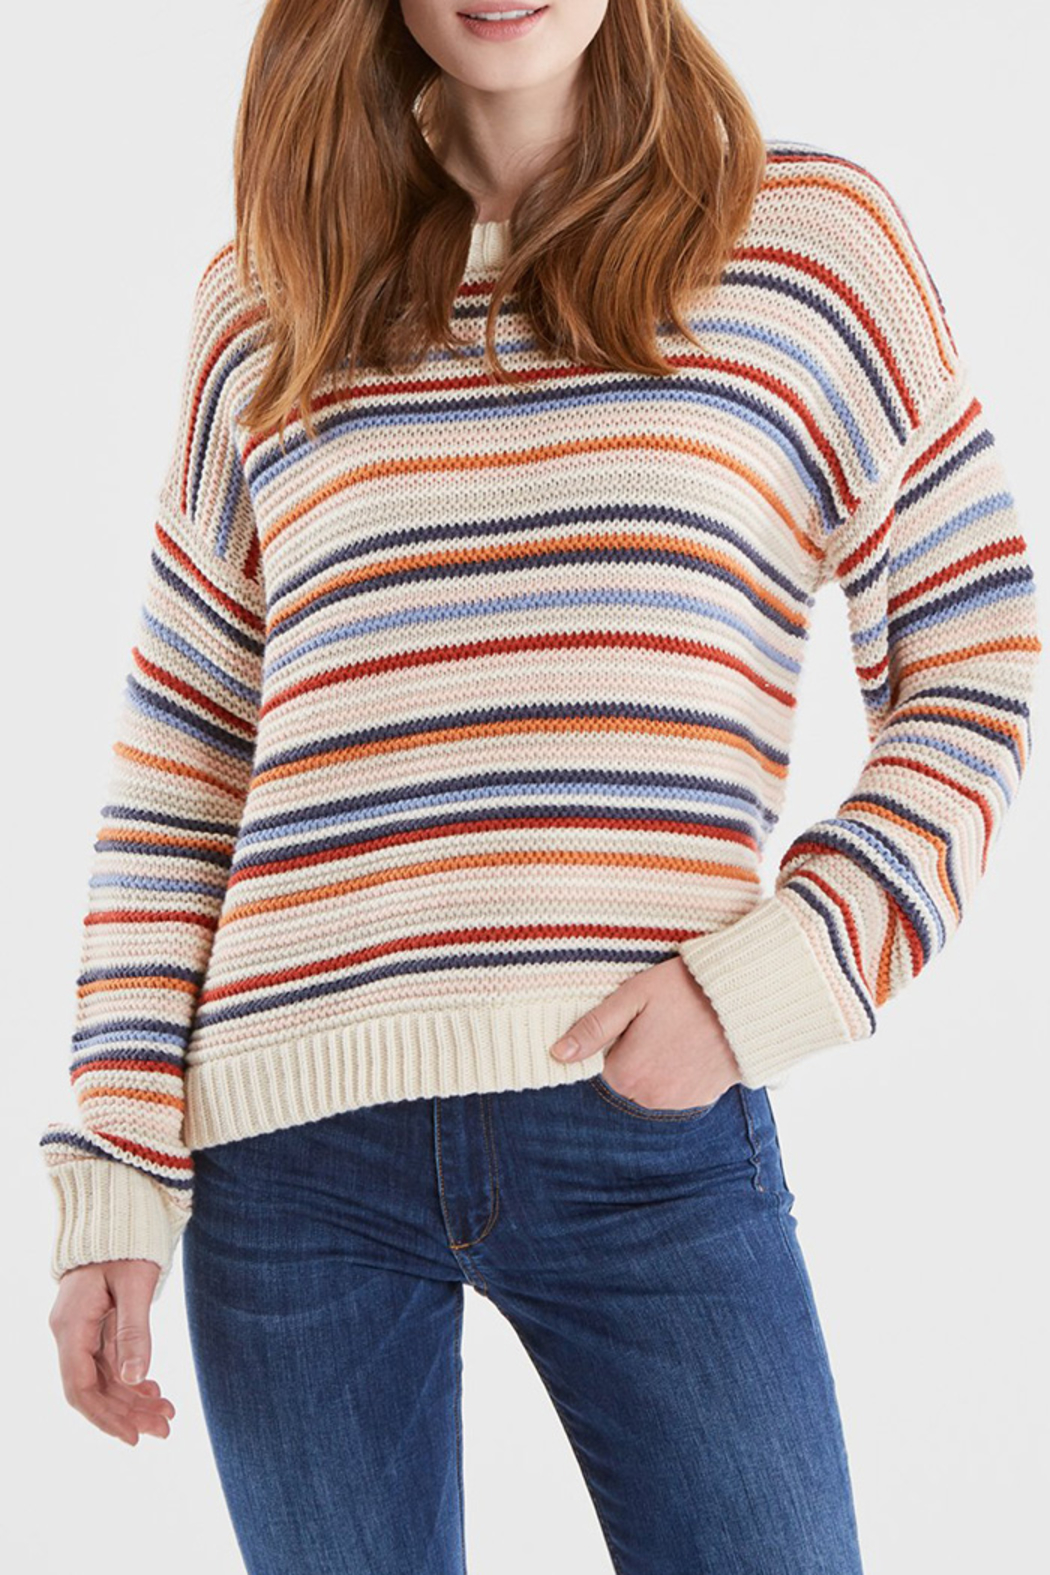 525 America STRIPED CREWNECK SWEATER - Main Image